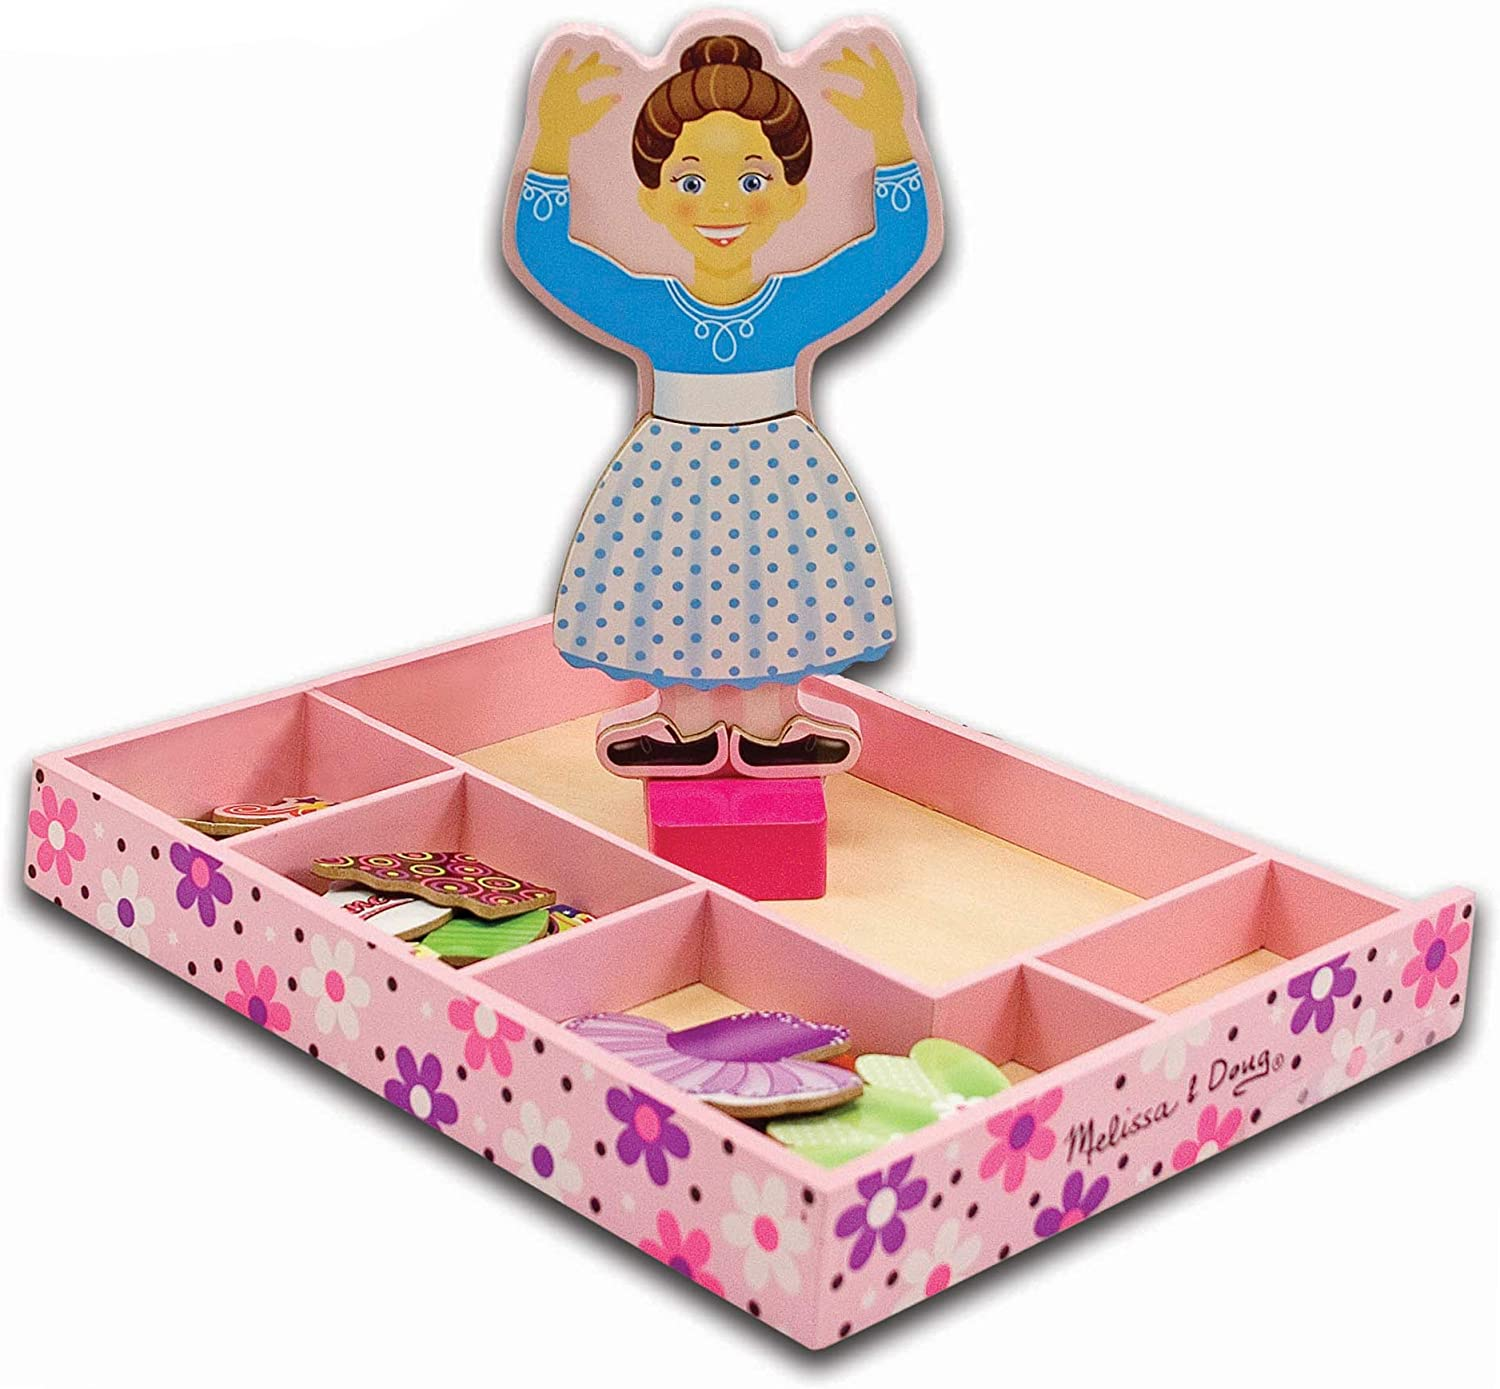 B000IEBY3A Melissa & Doug Nina Ballerina Magnetic Dress-Up Set (Pretend Play, 6 Outfits, Encourages Creativity, 27 Magnetic Pieces, Great Gift for Girls and Boys - Best for 3, 4, 5, and 6 Year Olds) 71KaWrdY2tL